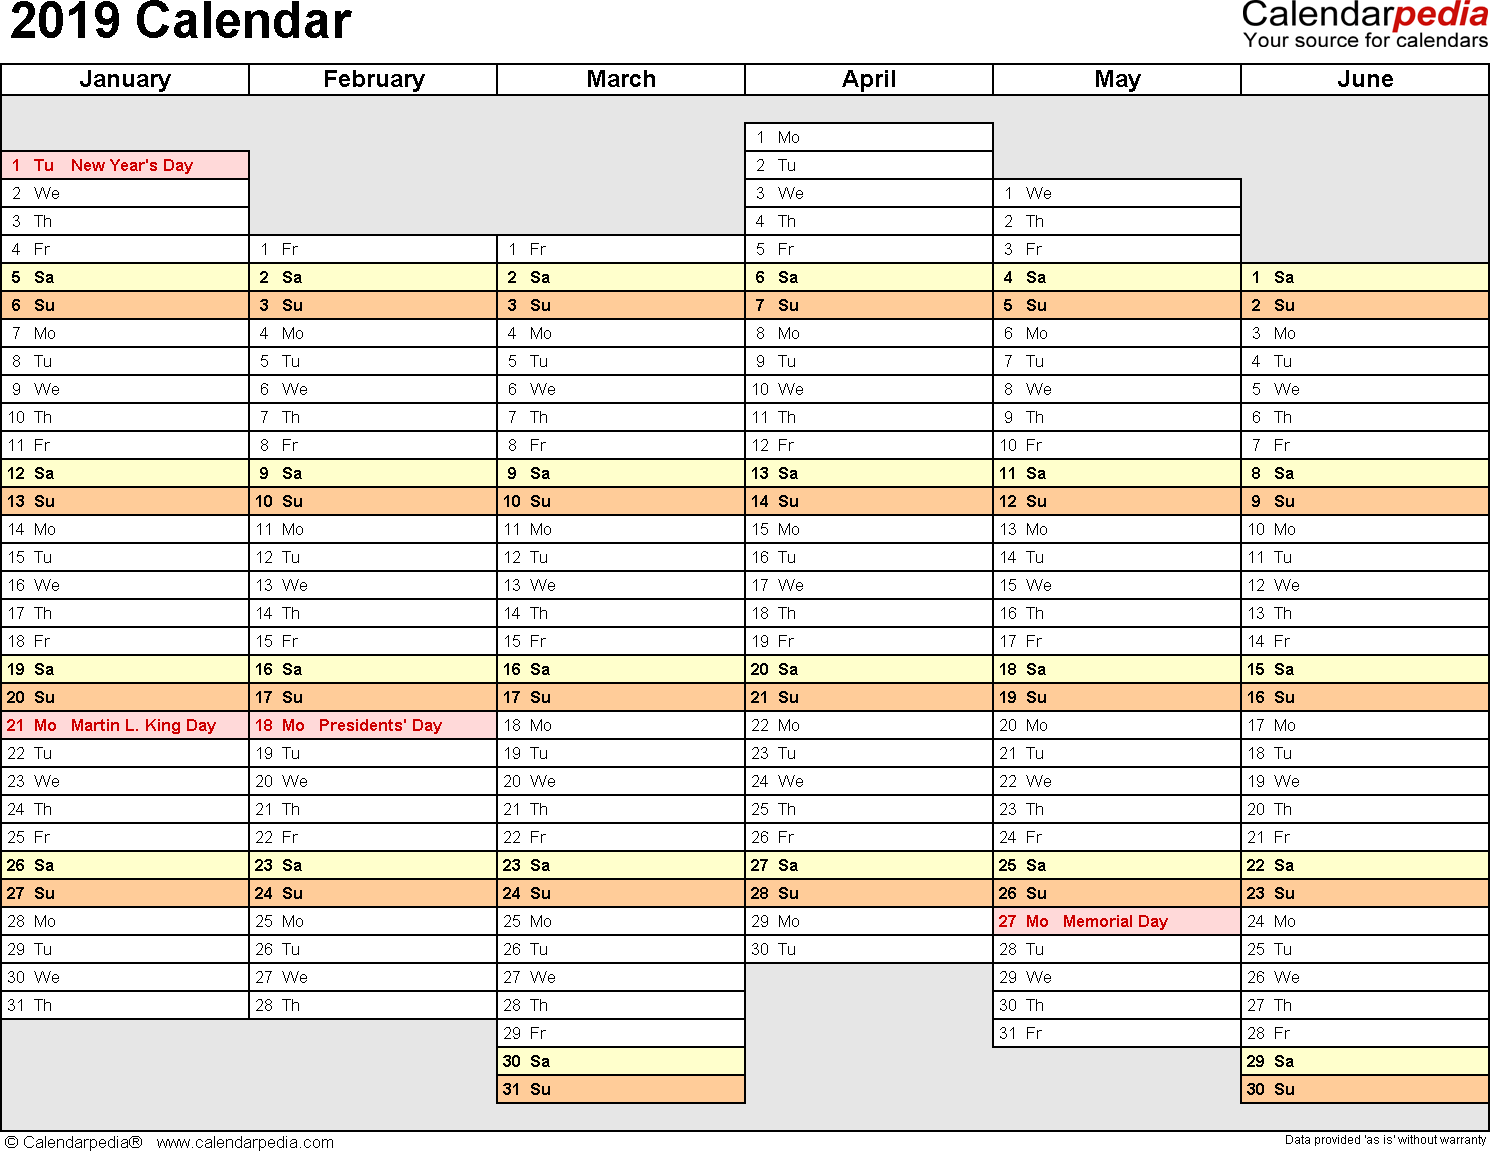 template 6 2019 calendar for excel months horizontally 2 pages days of